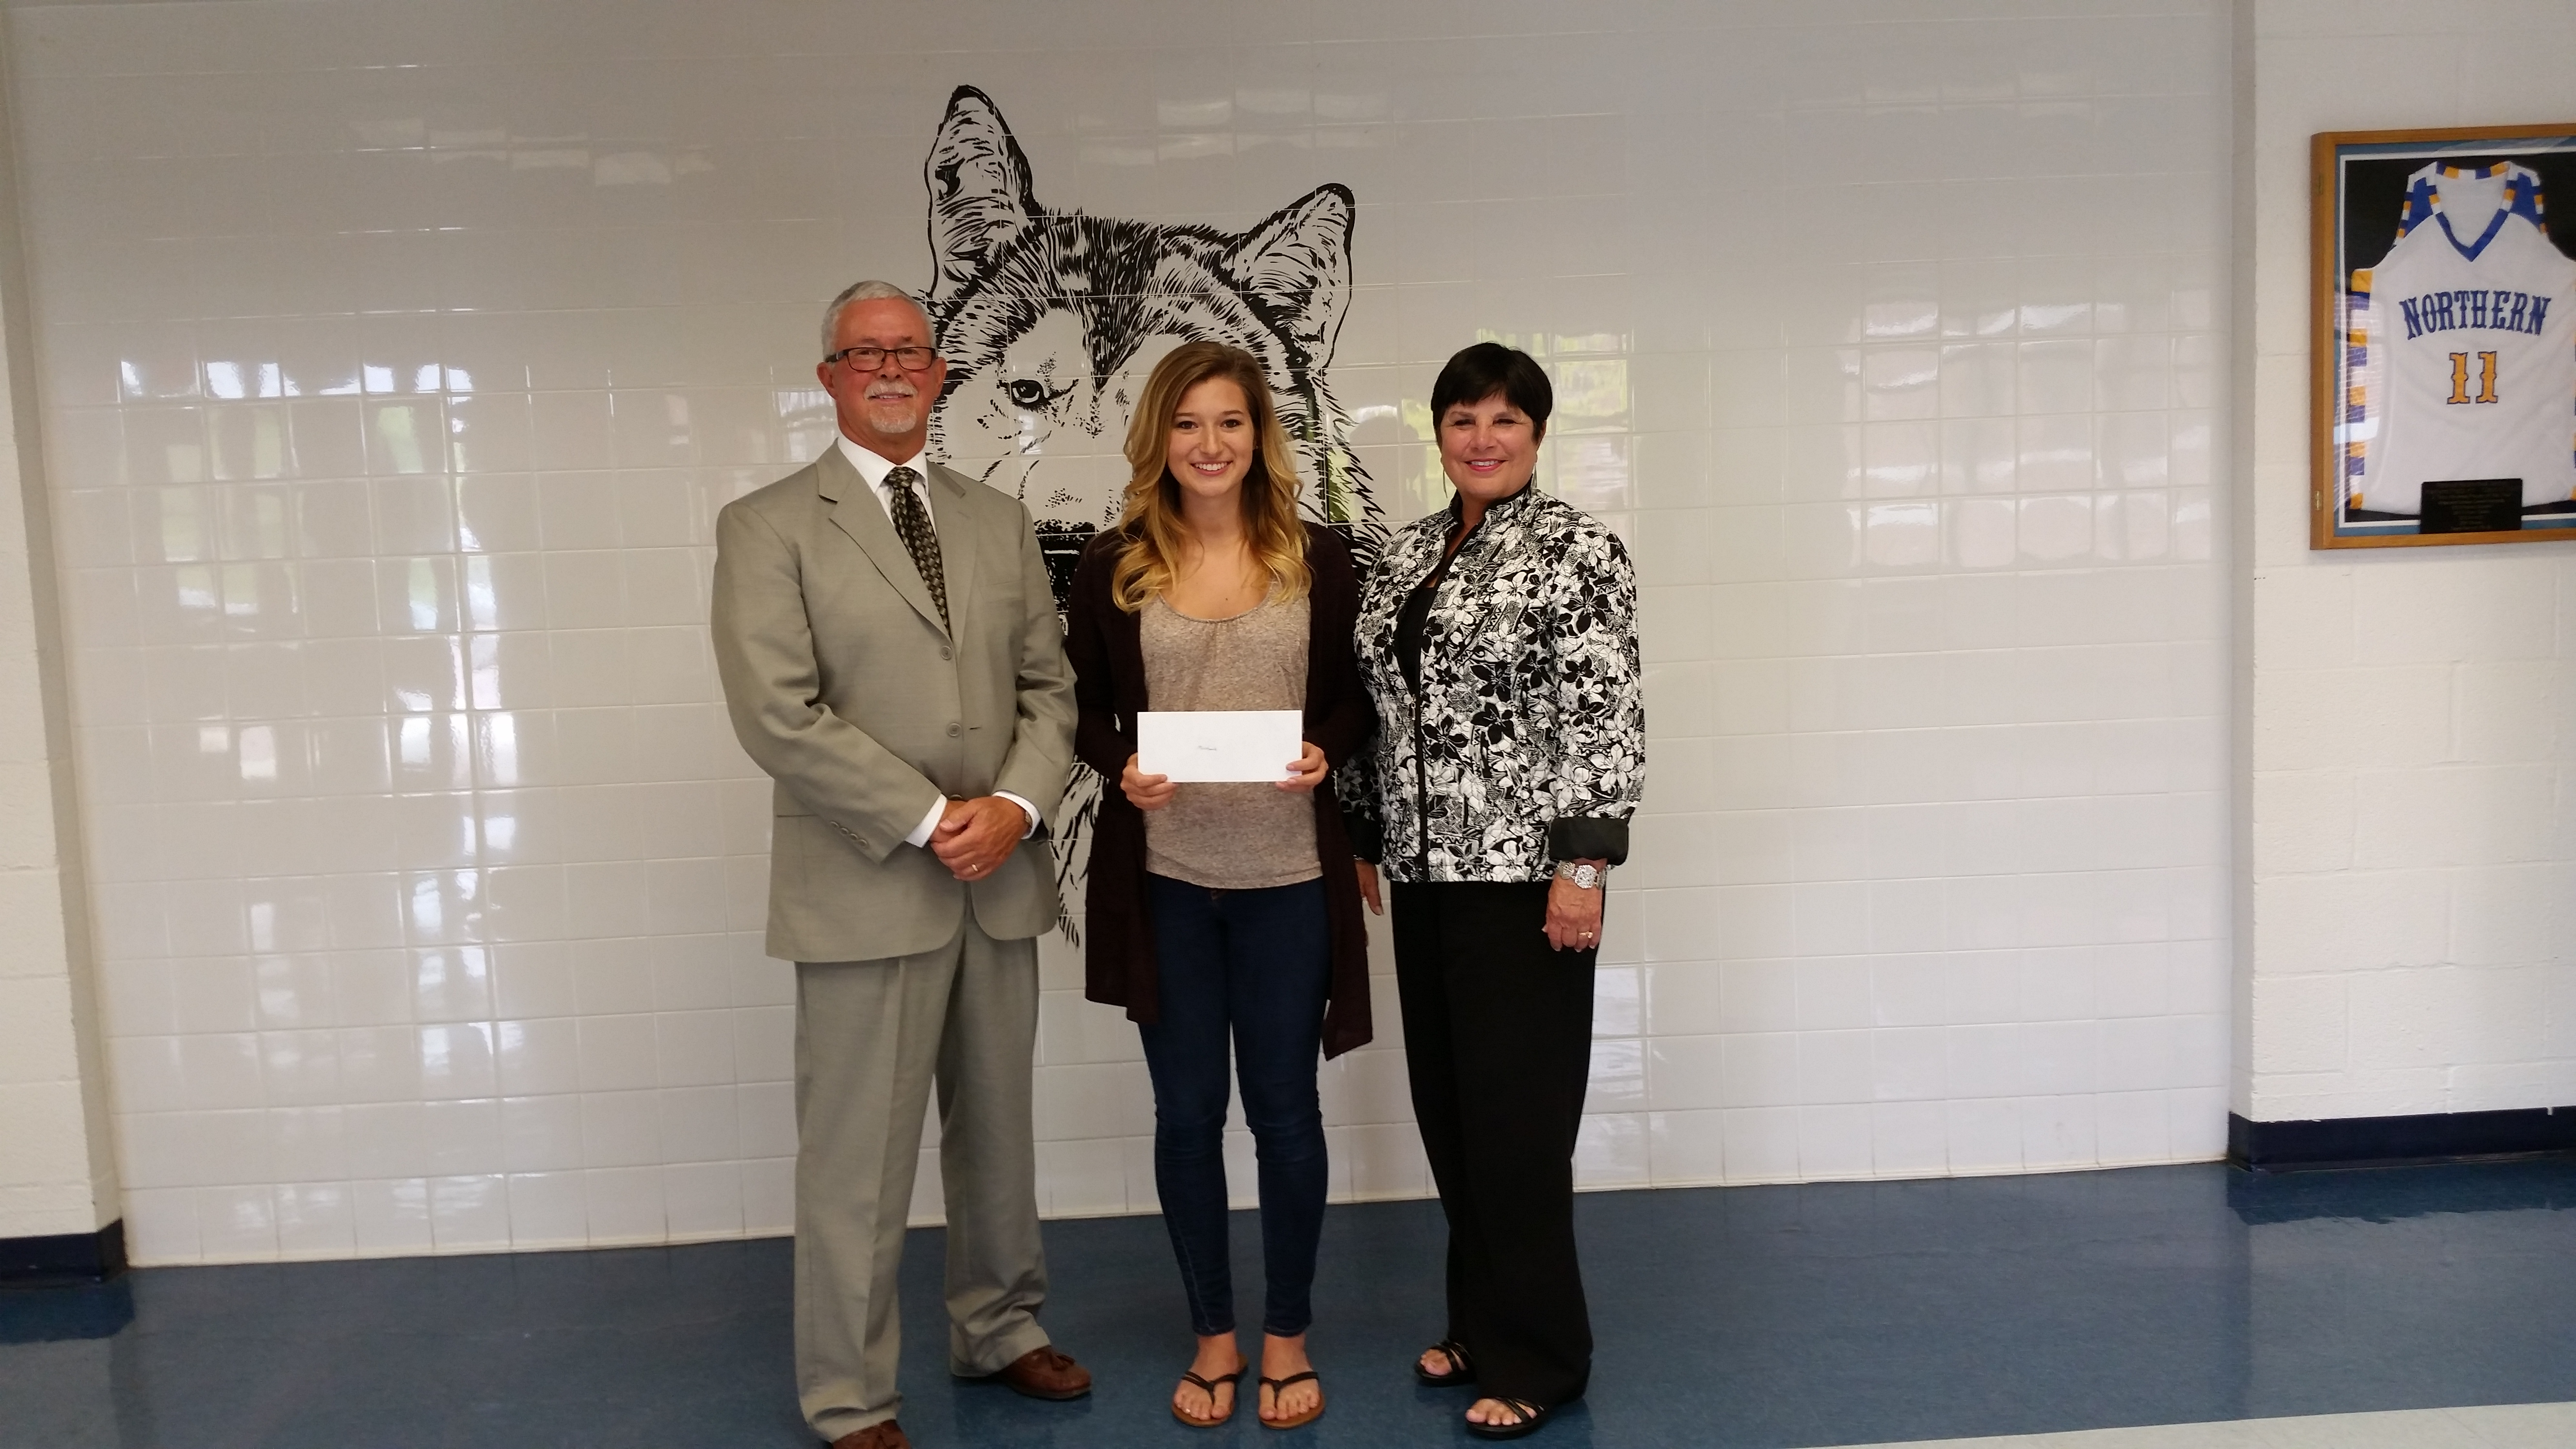 Andrew S. Woods Scholarship Donation to Senior Student at Northern High School